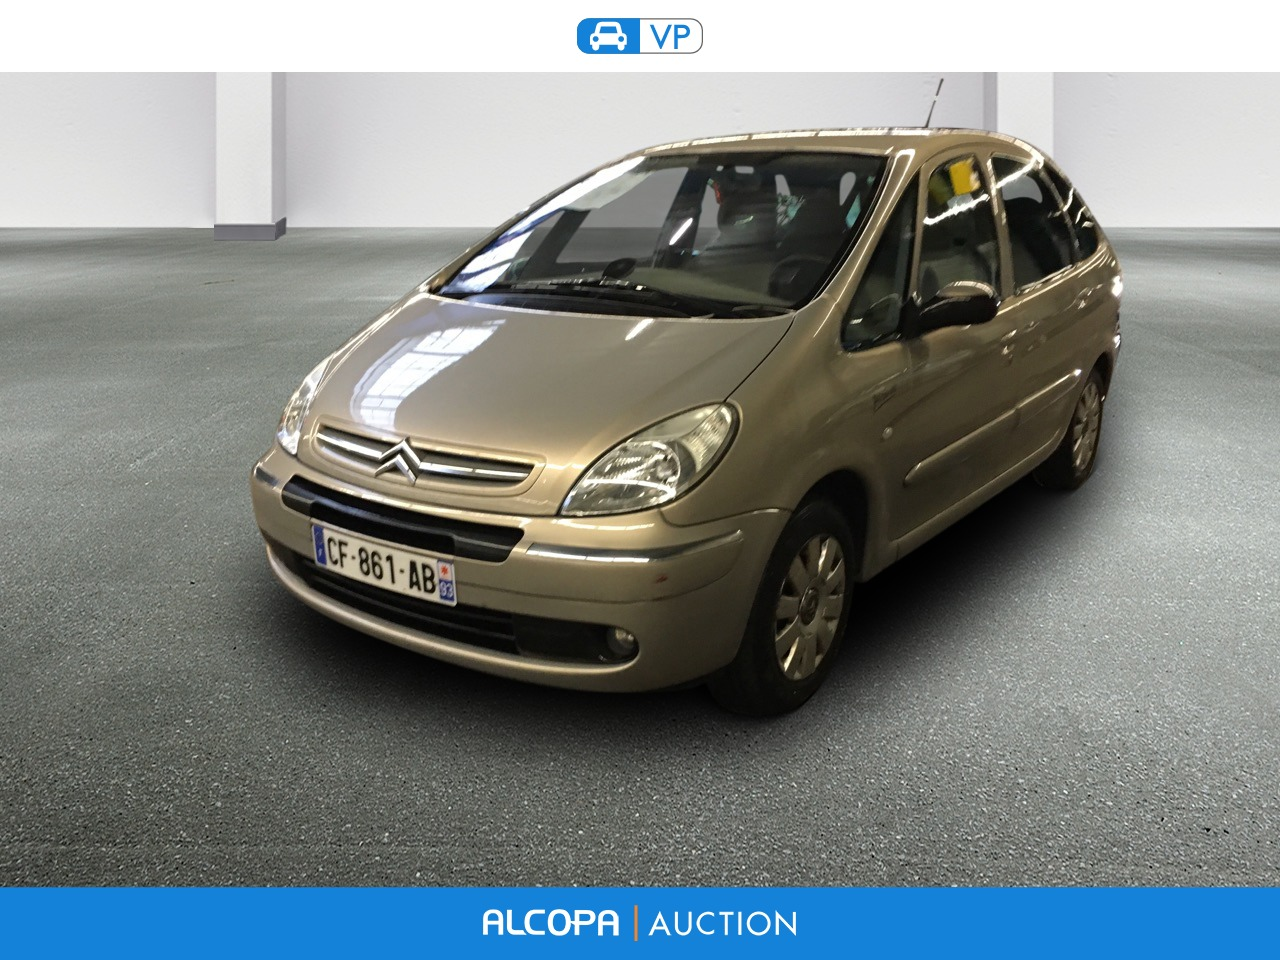 citroen xsara picasso xsara picasso 1 6 hdi 110 exclusive alcopa auction. Black Bedroom Furniture Sets. Home Design Ideas